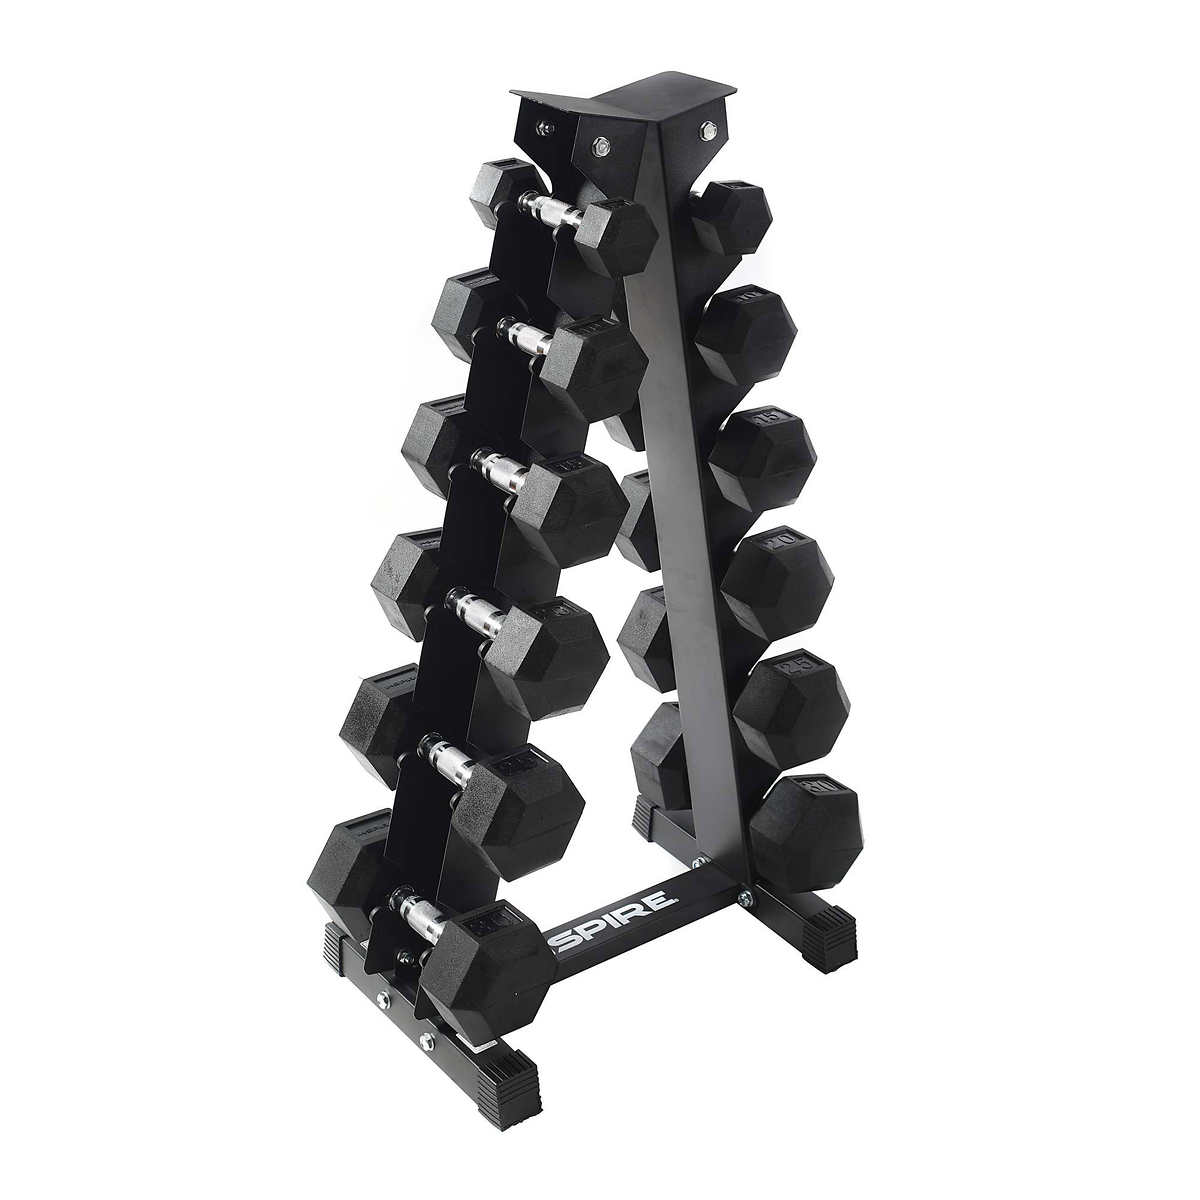 dumbbells from Costco